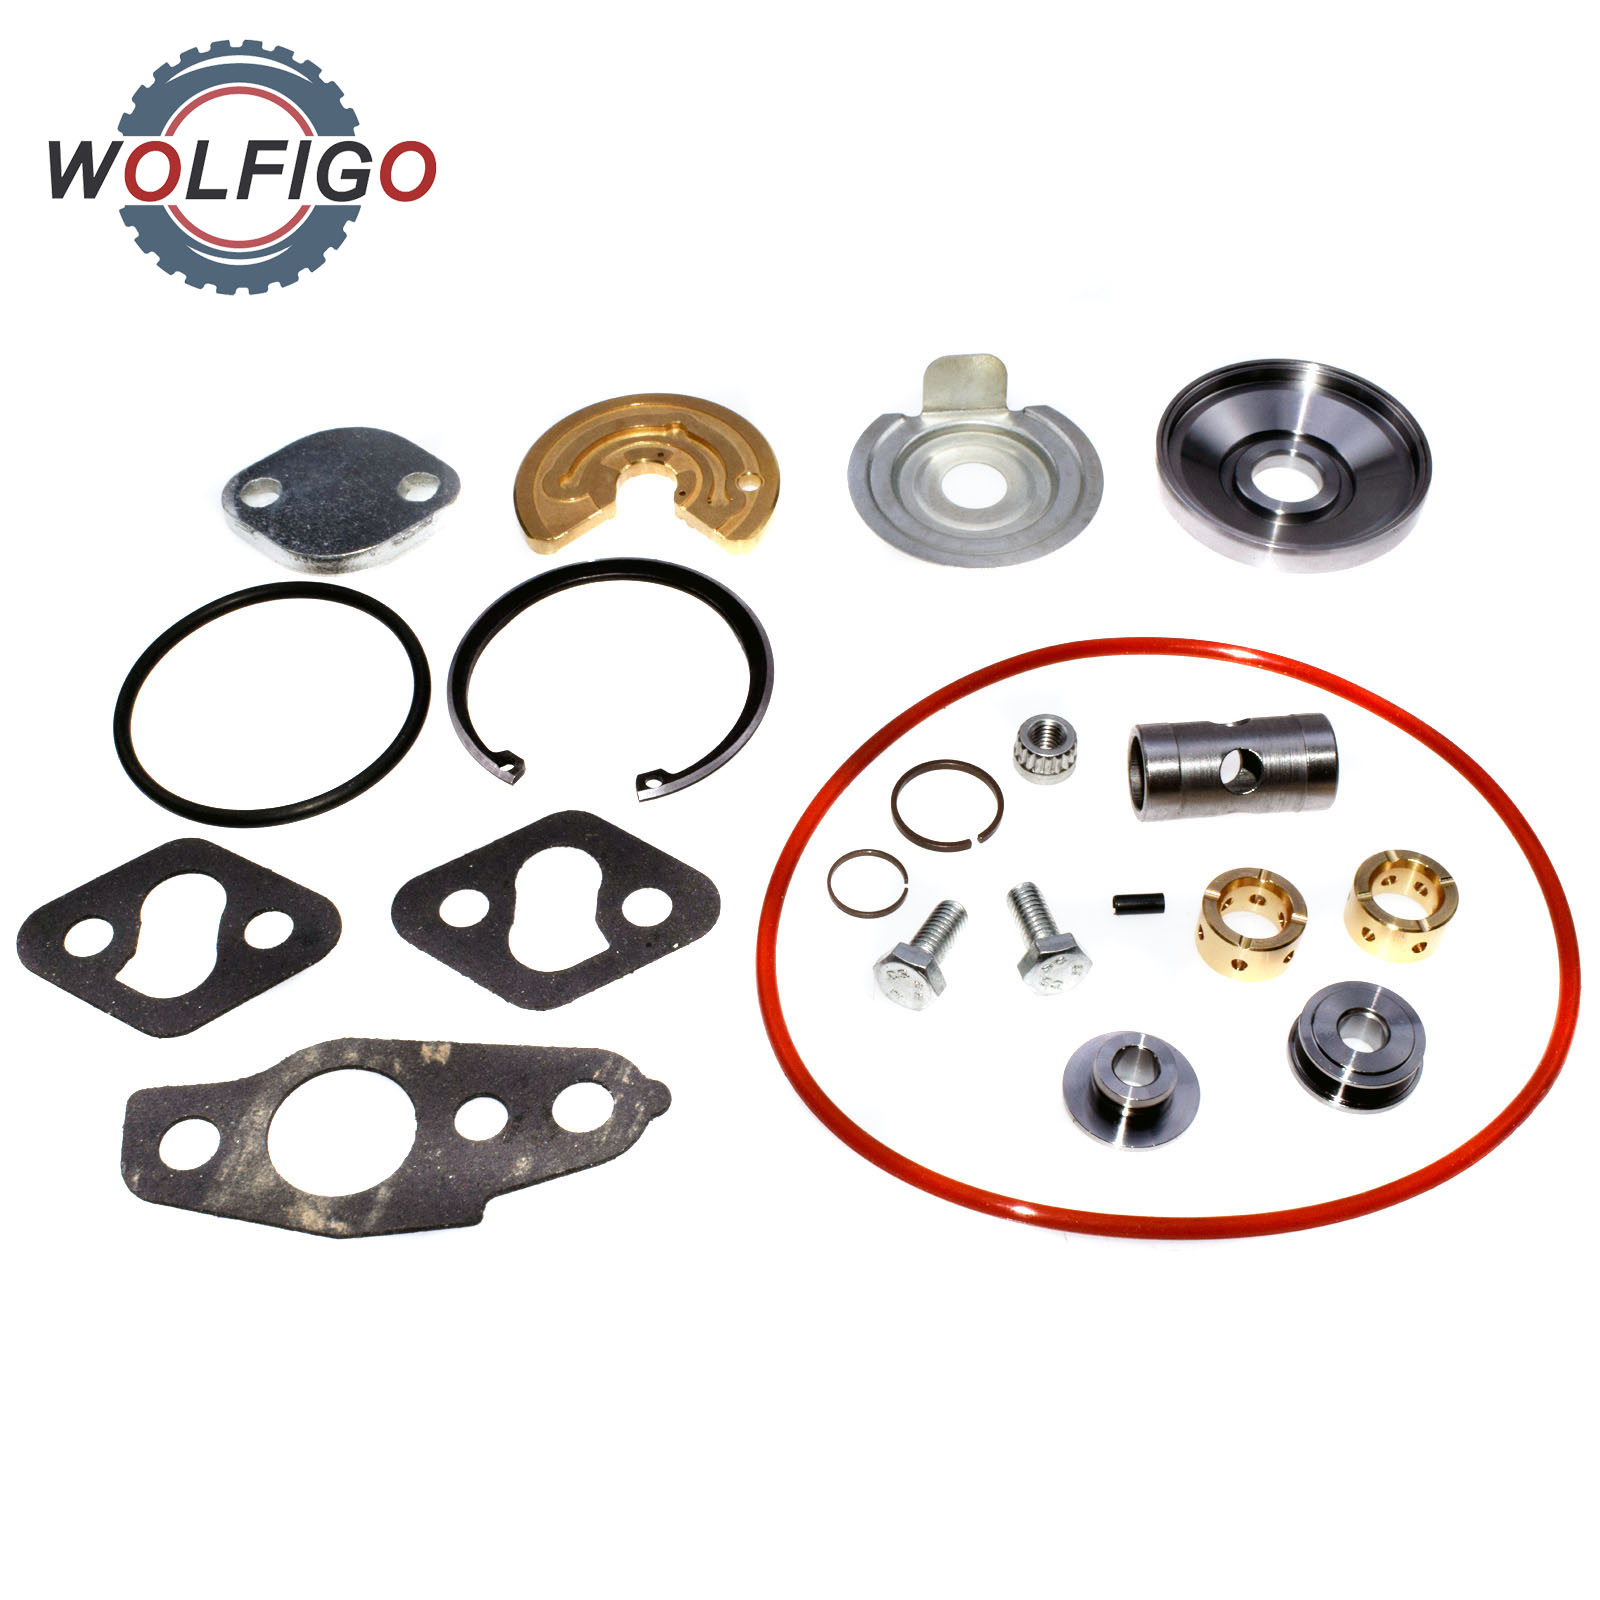 WOLFIGO Turbocharger repair kit Turbo Rebuild Kit Gasket CT20 CT26 3SGTE 1720174040 For Toyota Celica Land